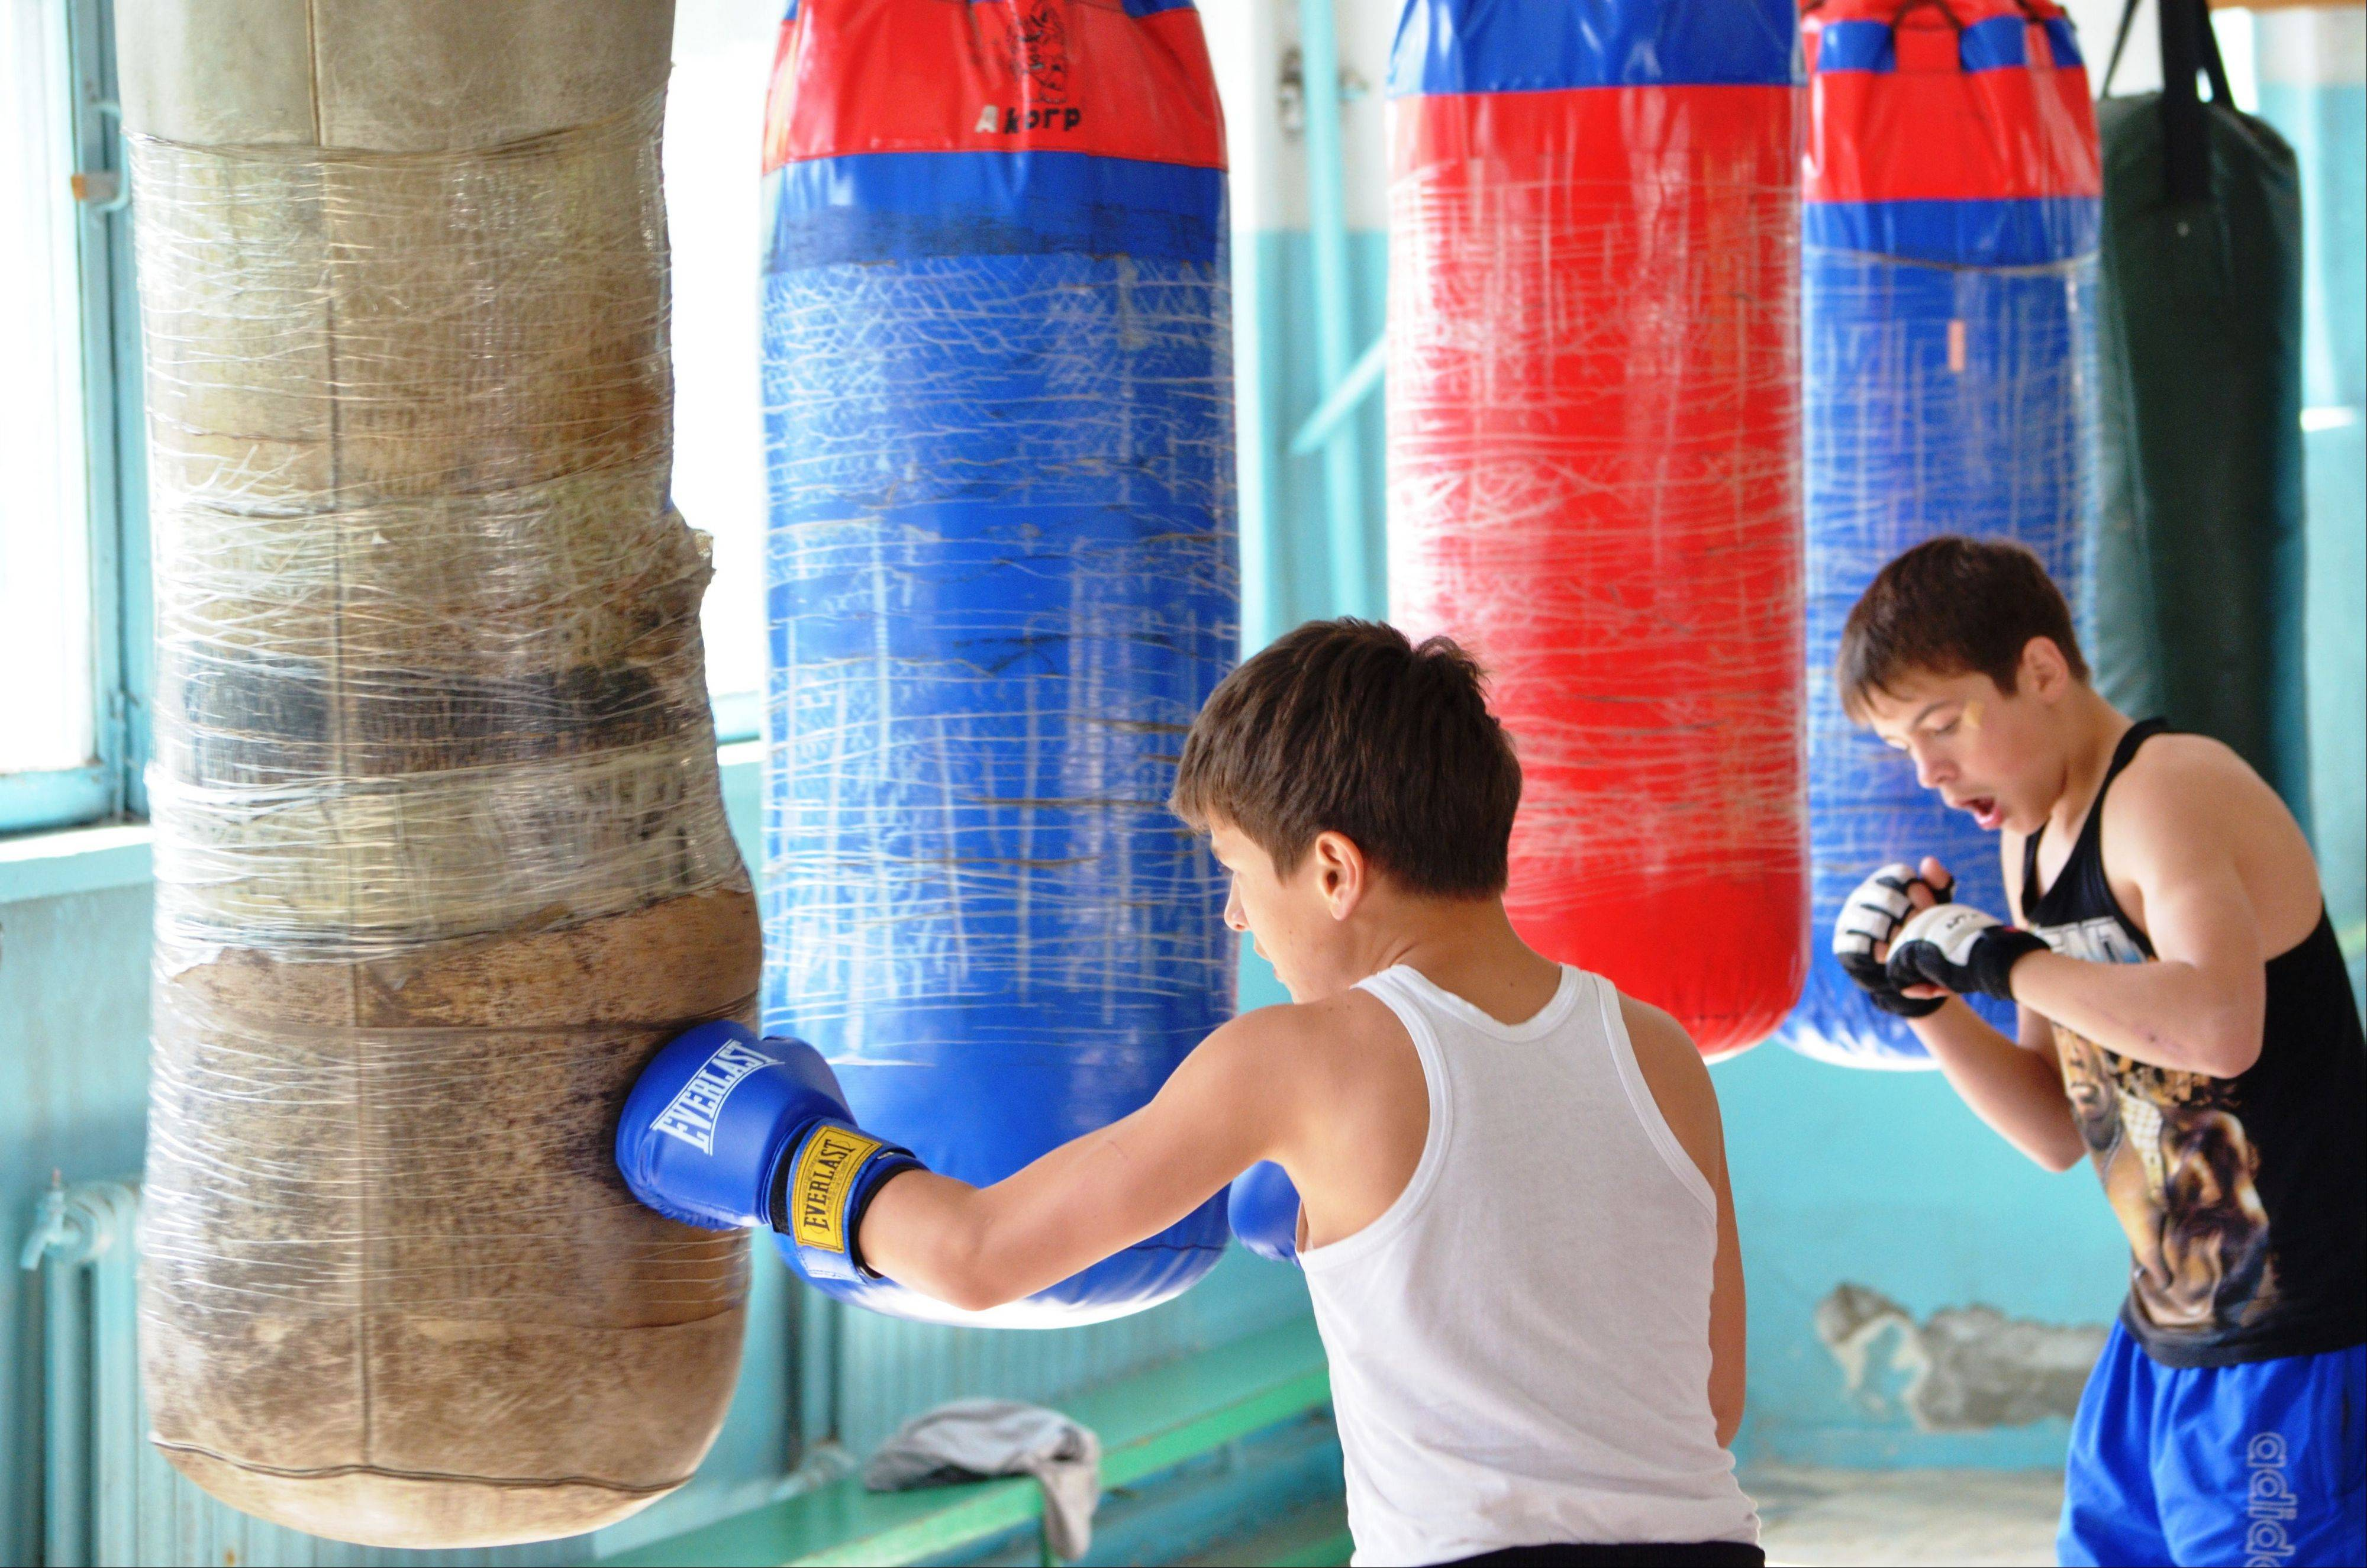 Local boys have boxing training at a sport school where Tamerlan Tsarnaev, who was dubbed a suspect in the Boston Marathon bombings, had his training, in a small Kyrgyz city Tokmok east of the country's capital of Bishkek, on Friday.